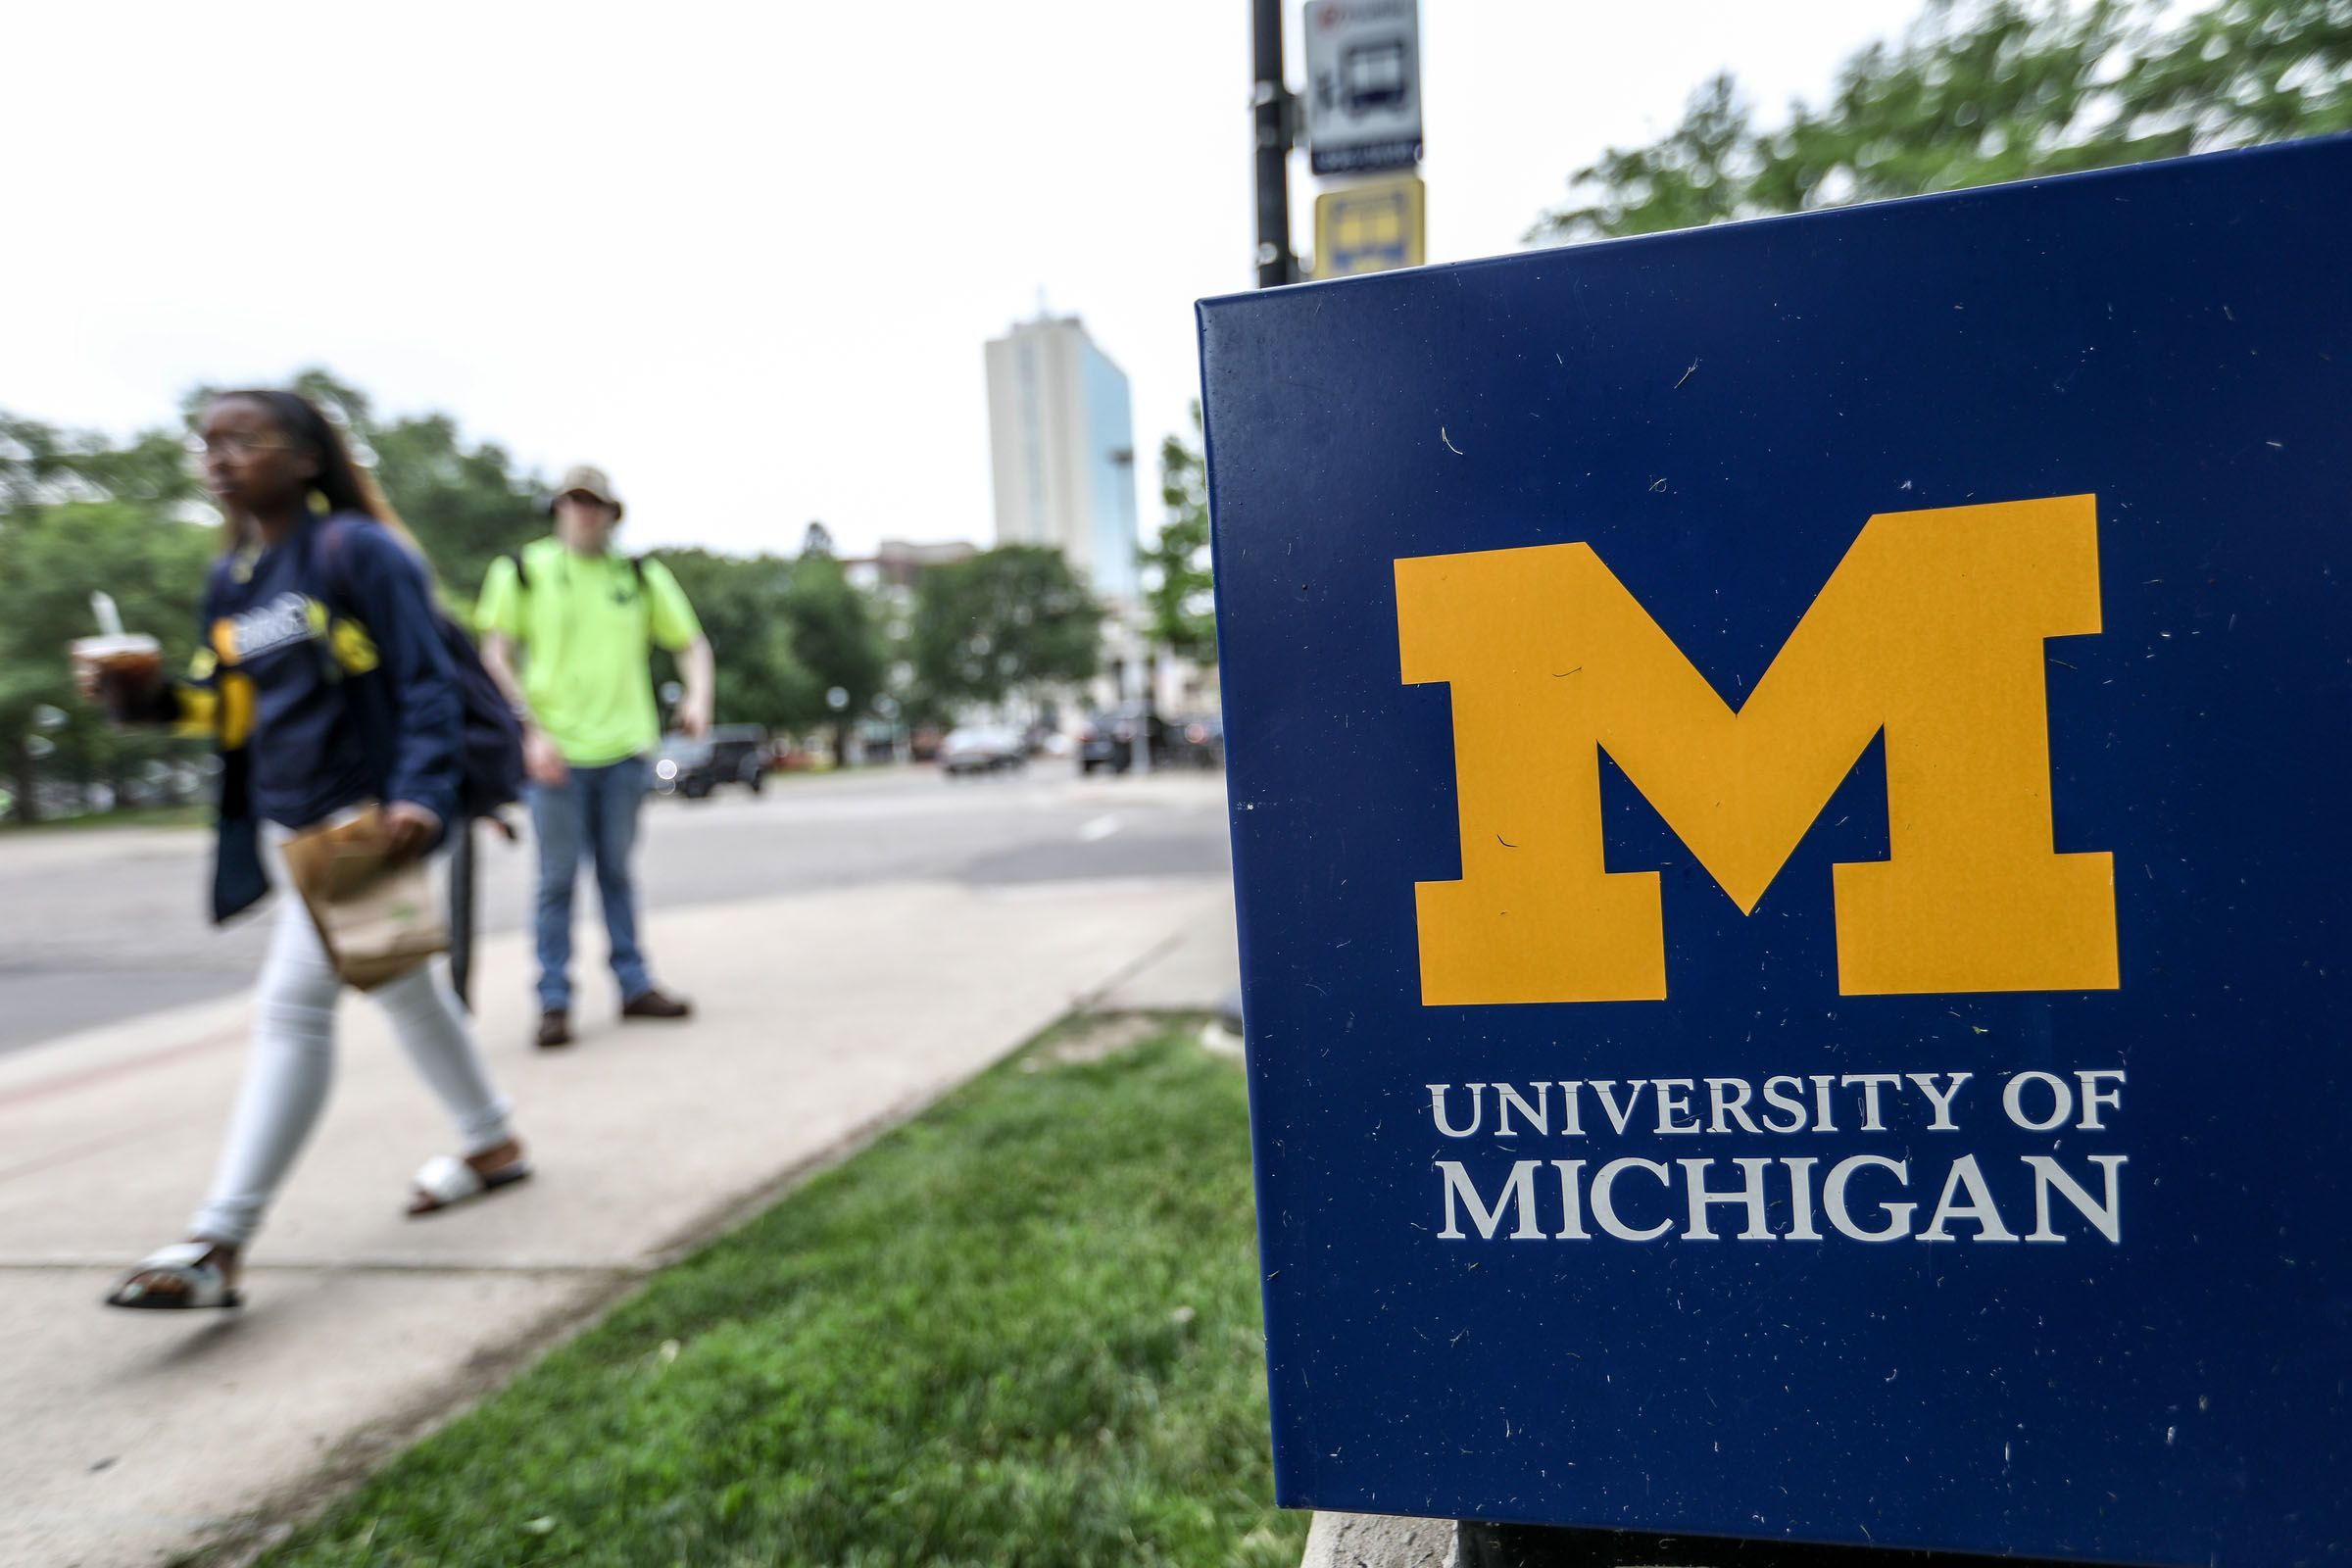 University of Michigan students in Flint and Dearborn are shortchanged. That has to stop.